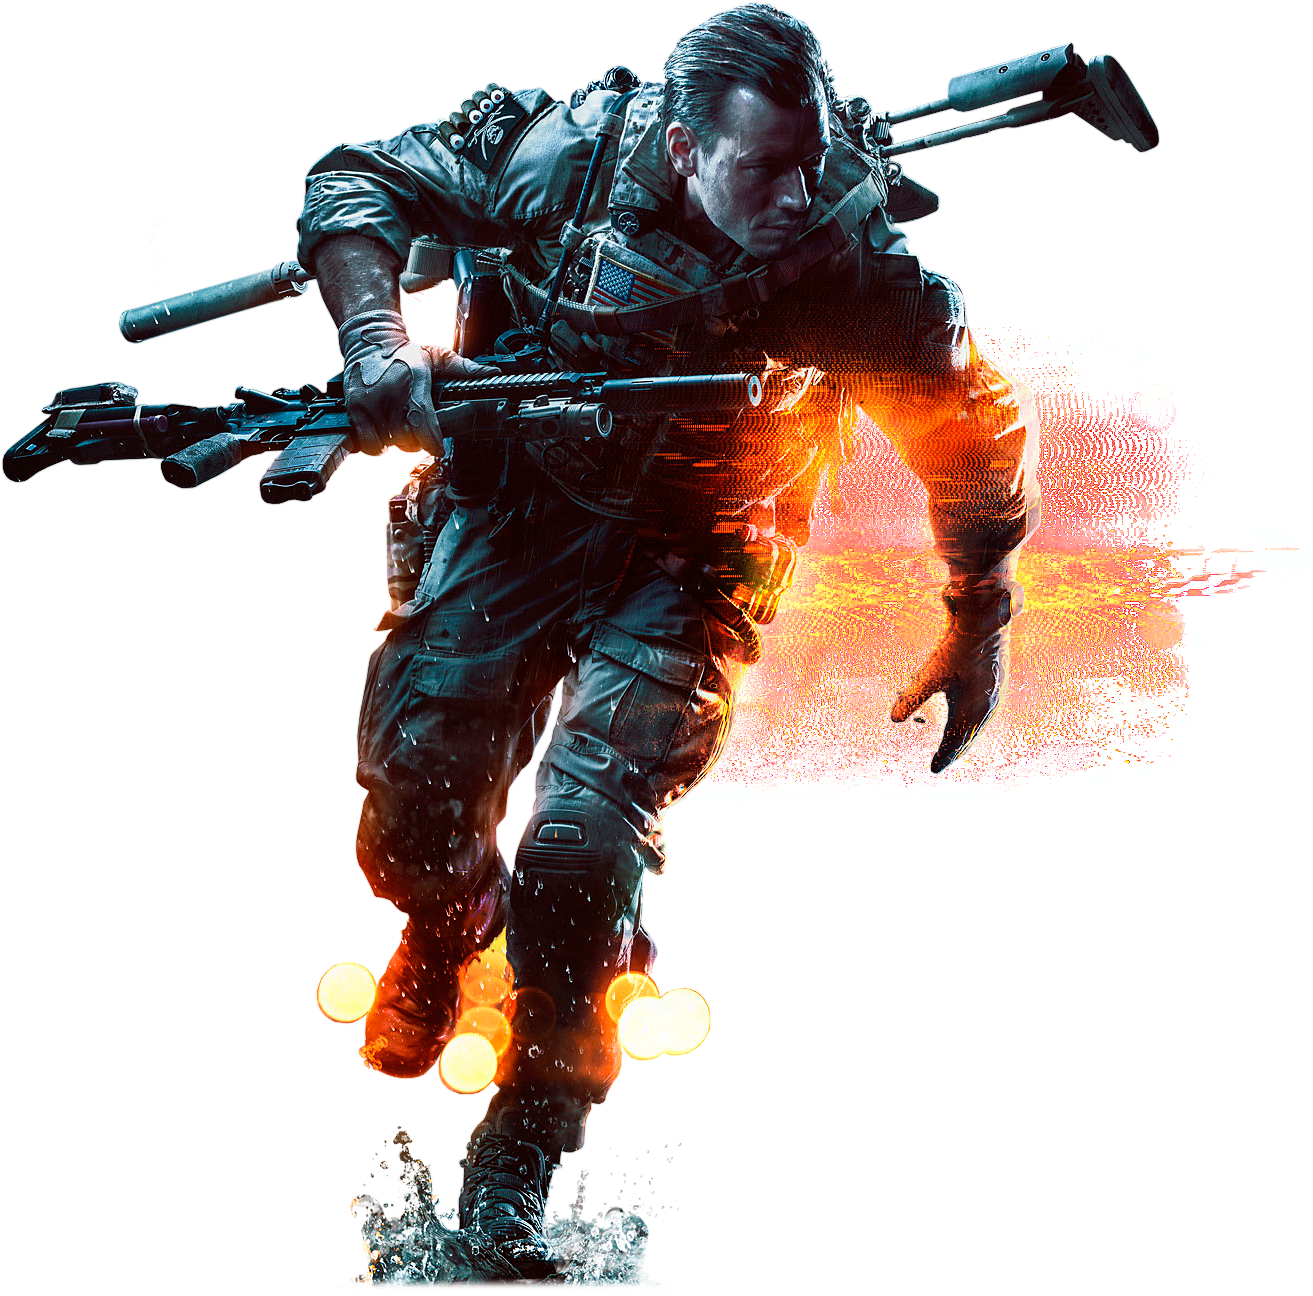 Battlefield HD PNG - 93702